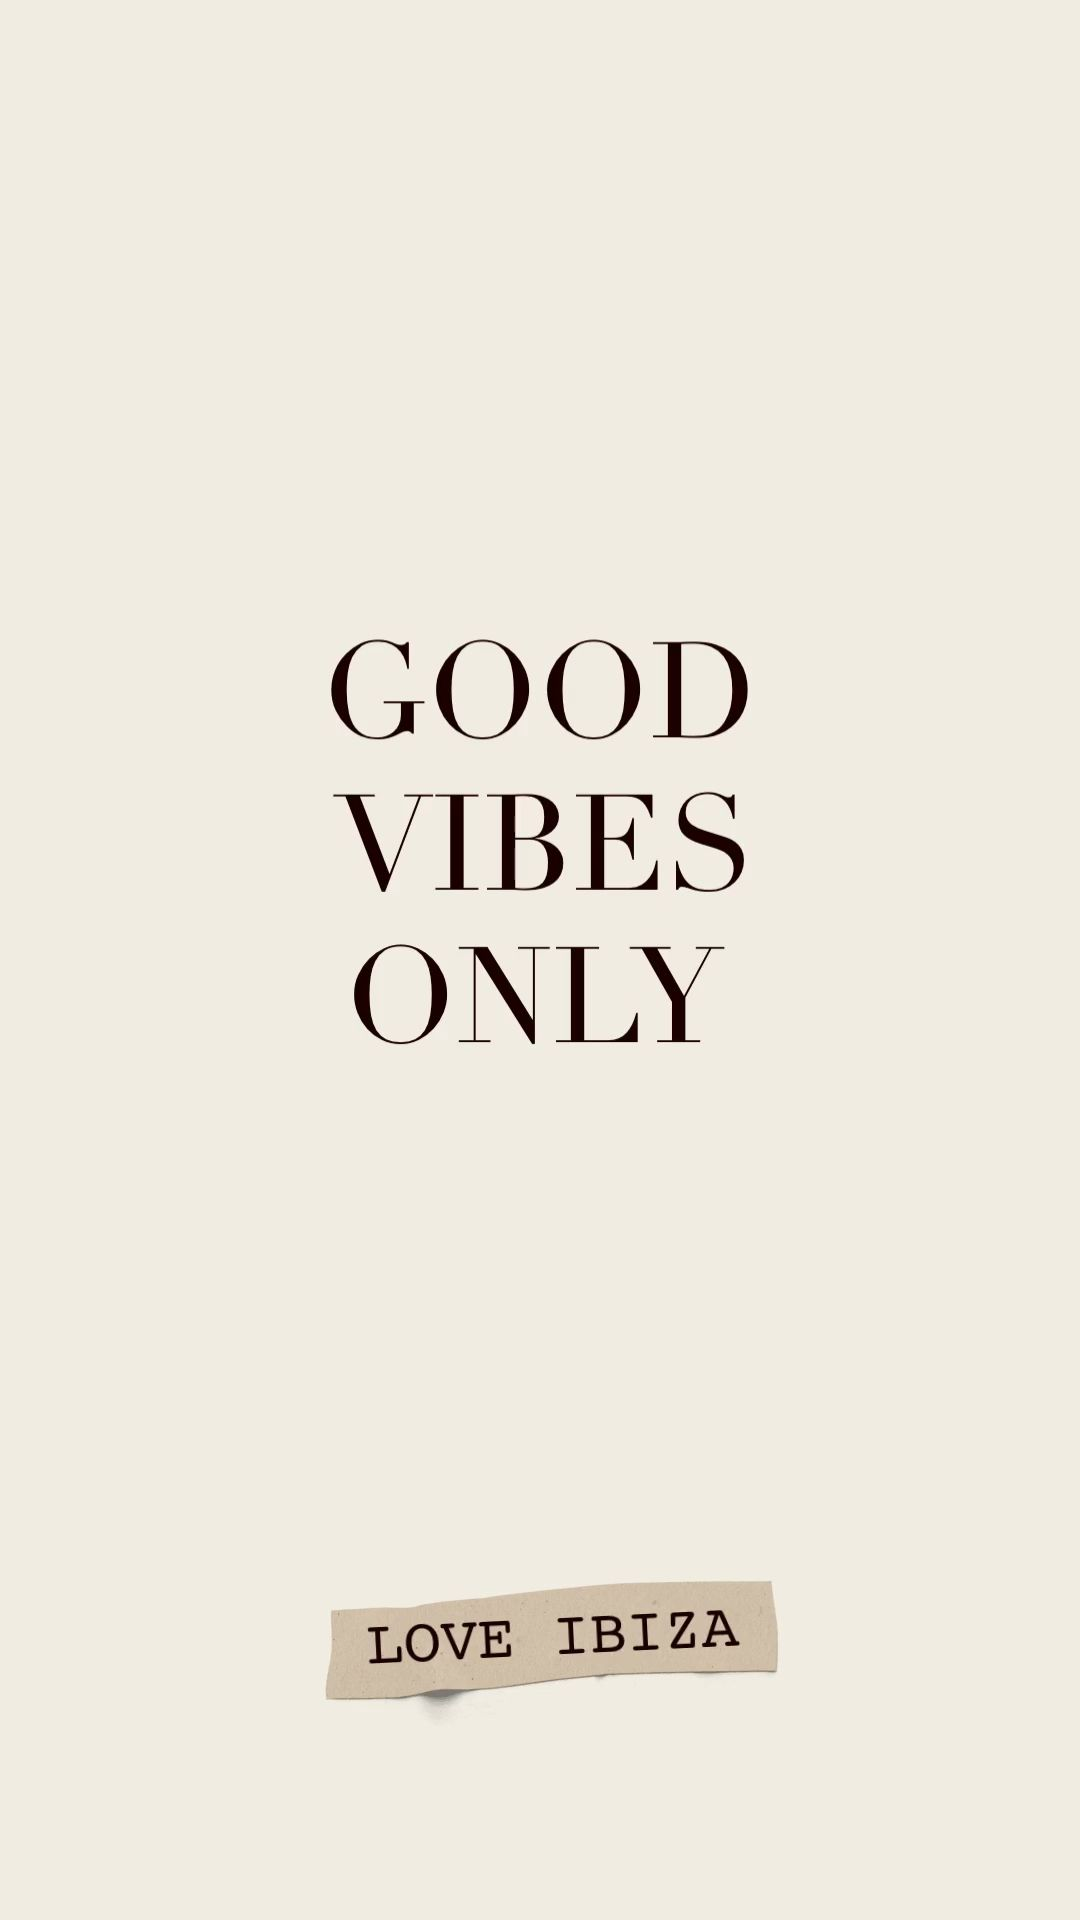 Good vibes only – life quote